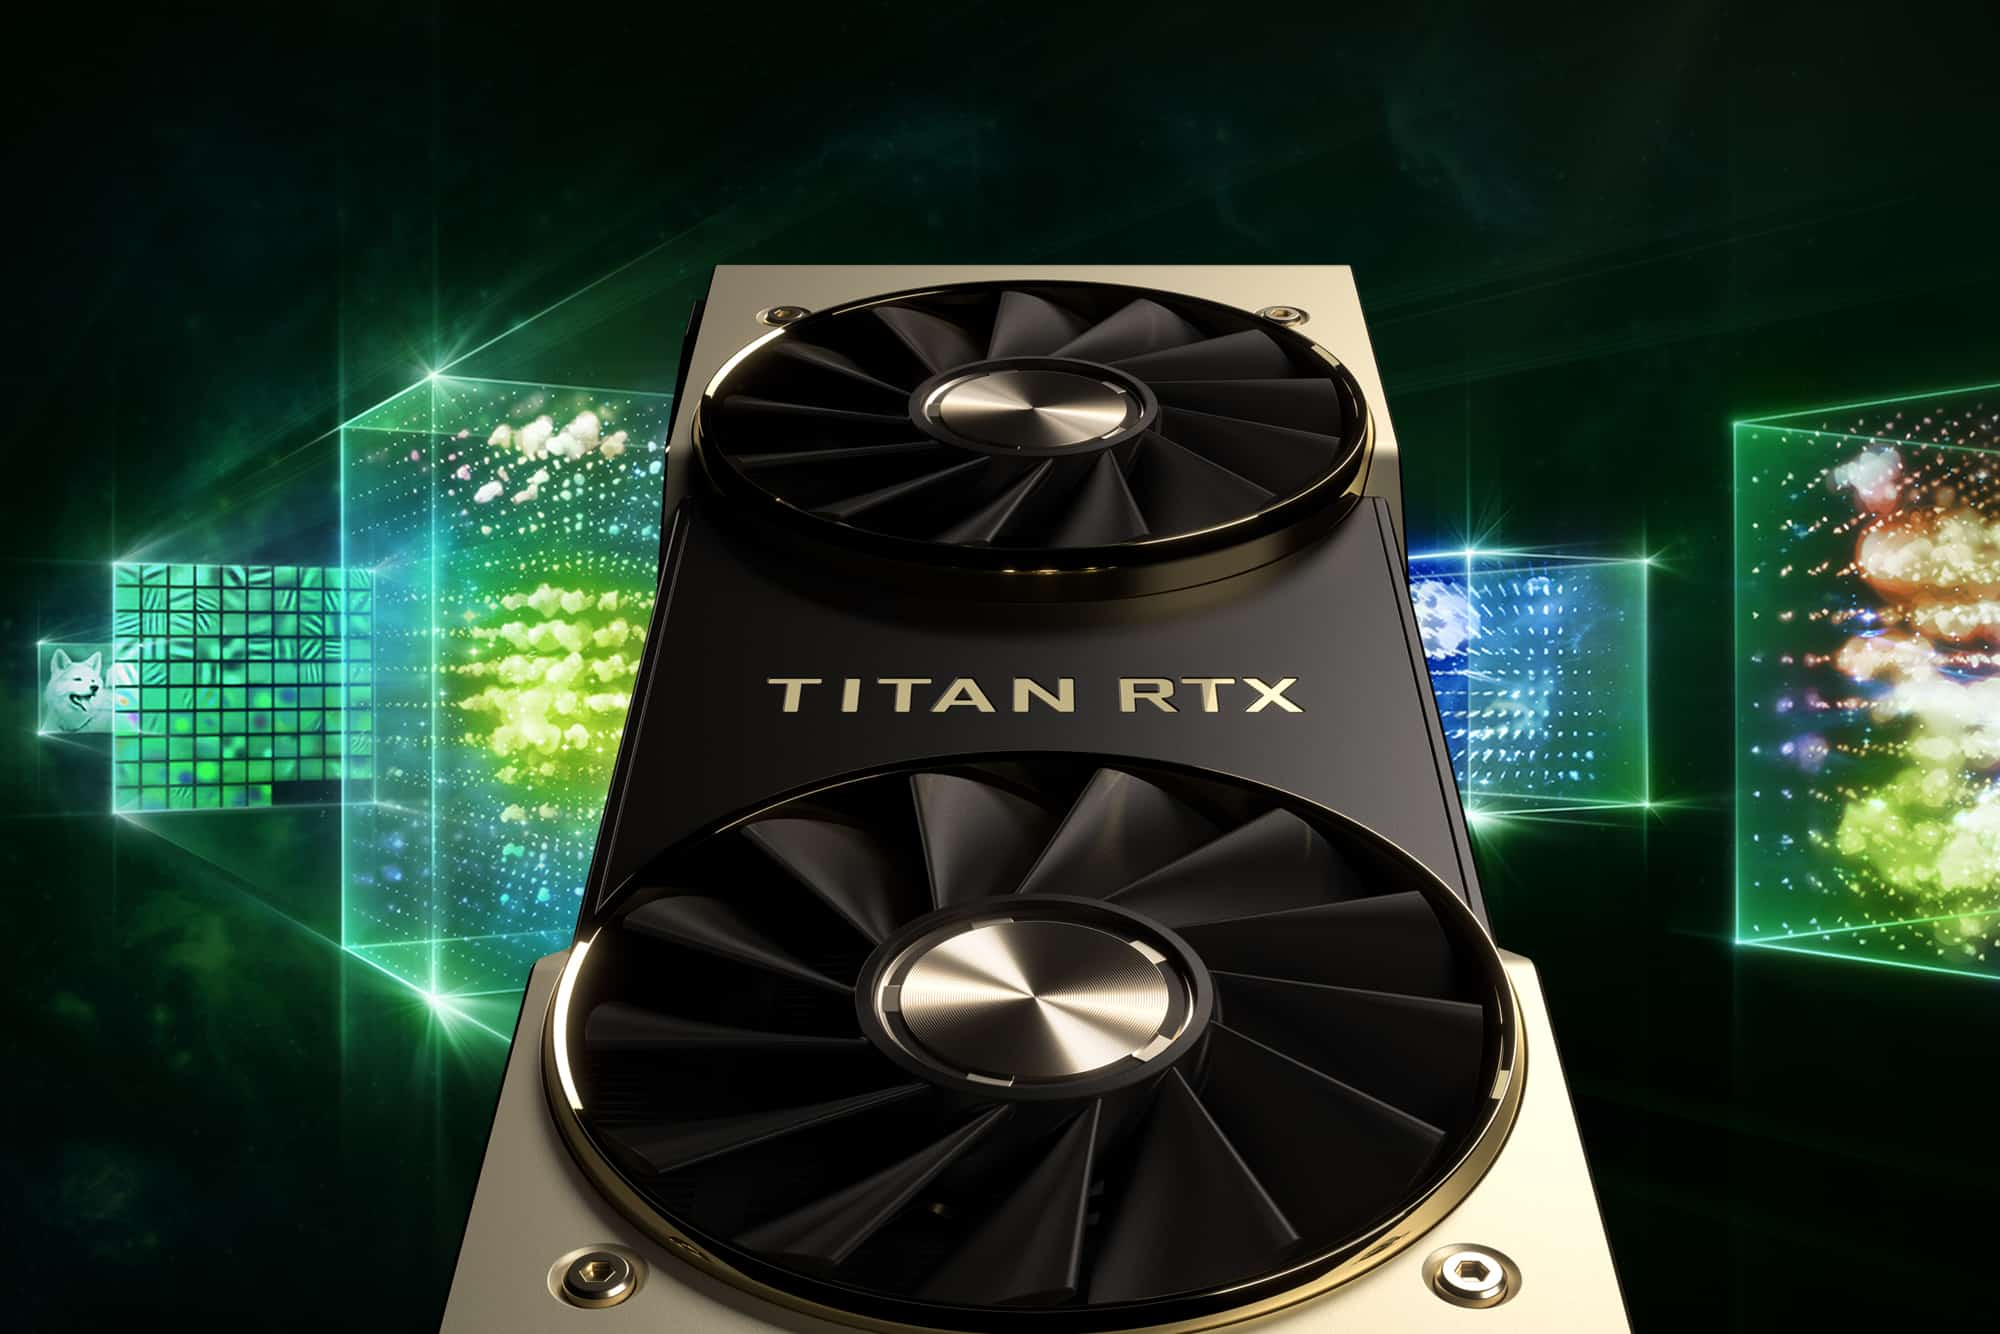 Titan RTX graphics card close-up.